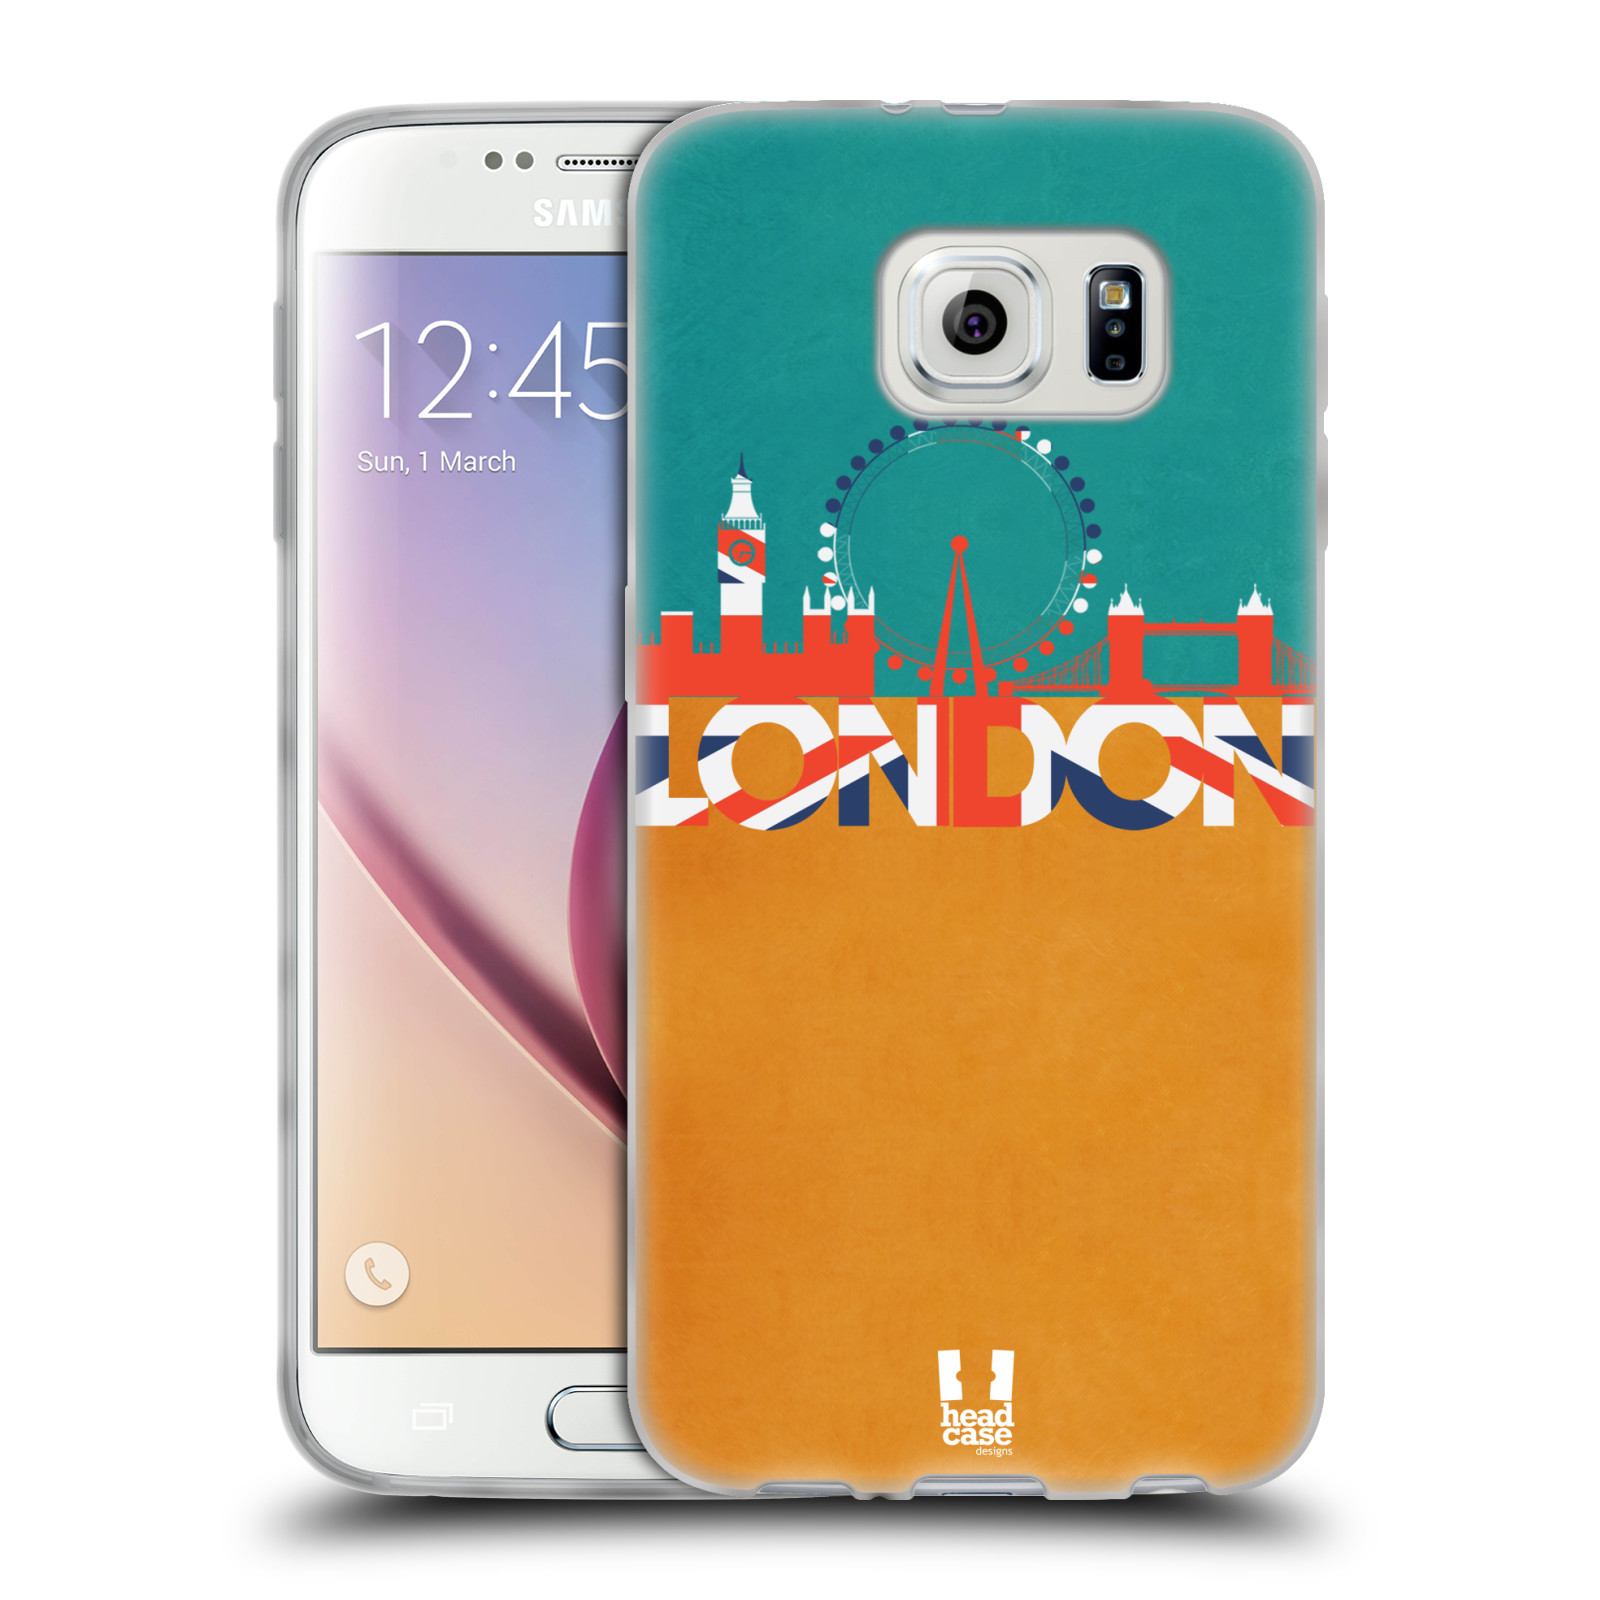 HEAD-CASE-DESIGNS-VISTA-DI-LONDRA-COVER-MORBIDA-IN-GEL-PER-SAMSUNG-TELEFONI-1